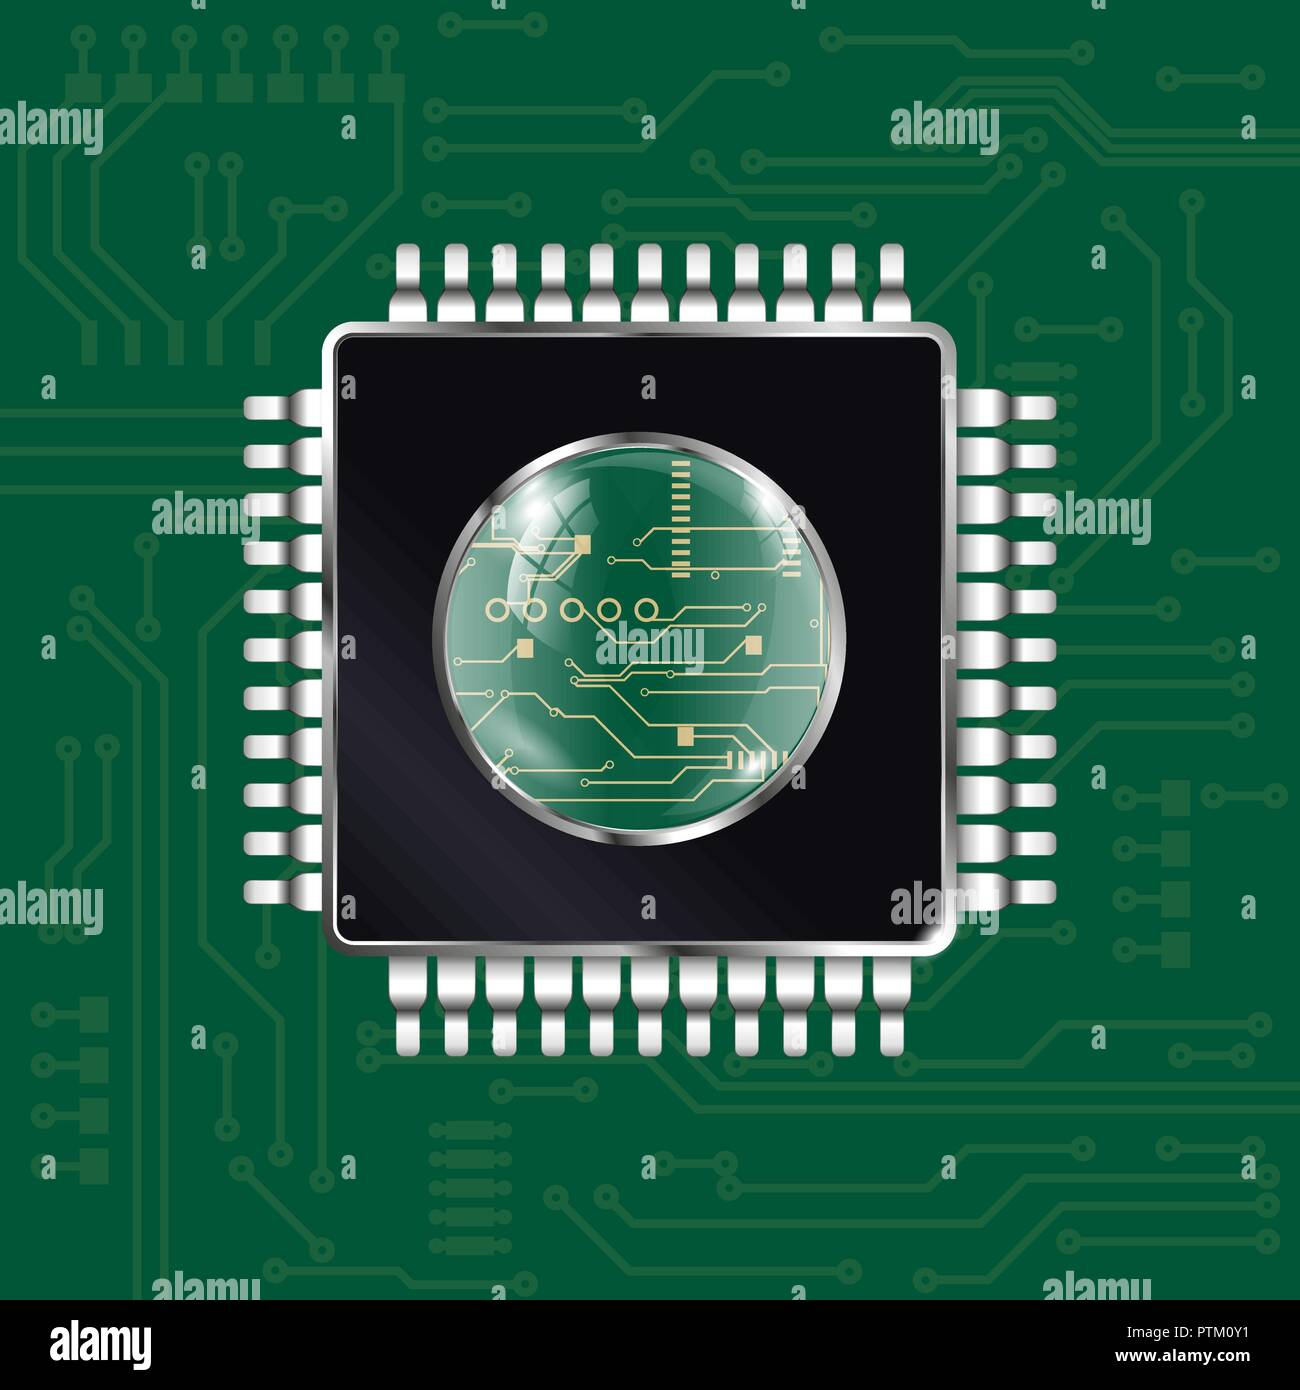 Computer chip - Stock Image